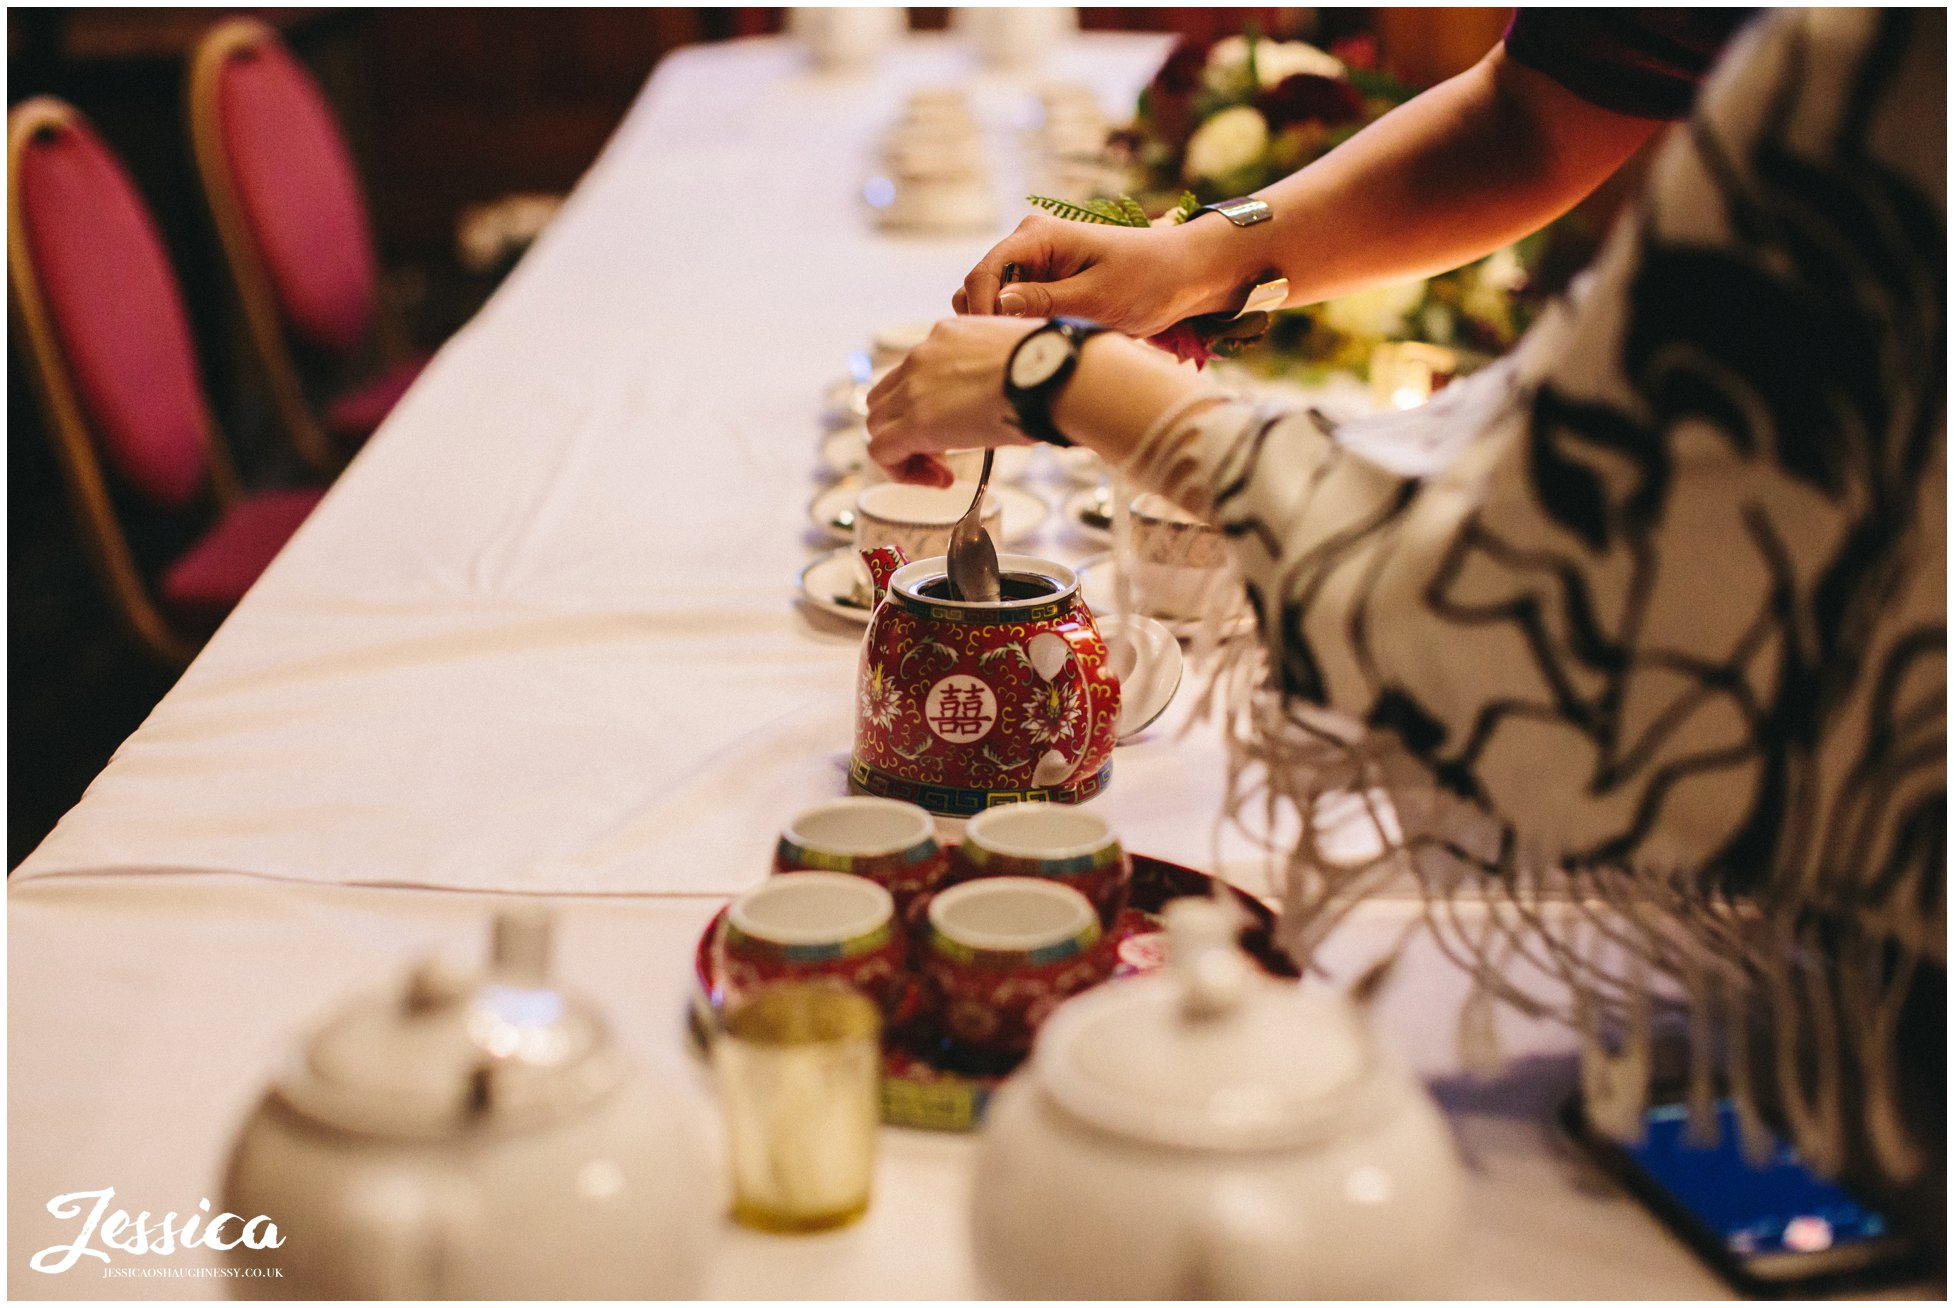 Chinese tea is prepared for the tea ceremony